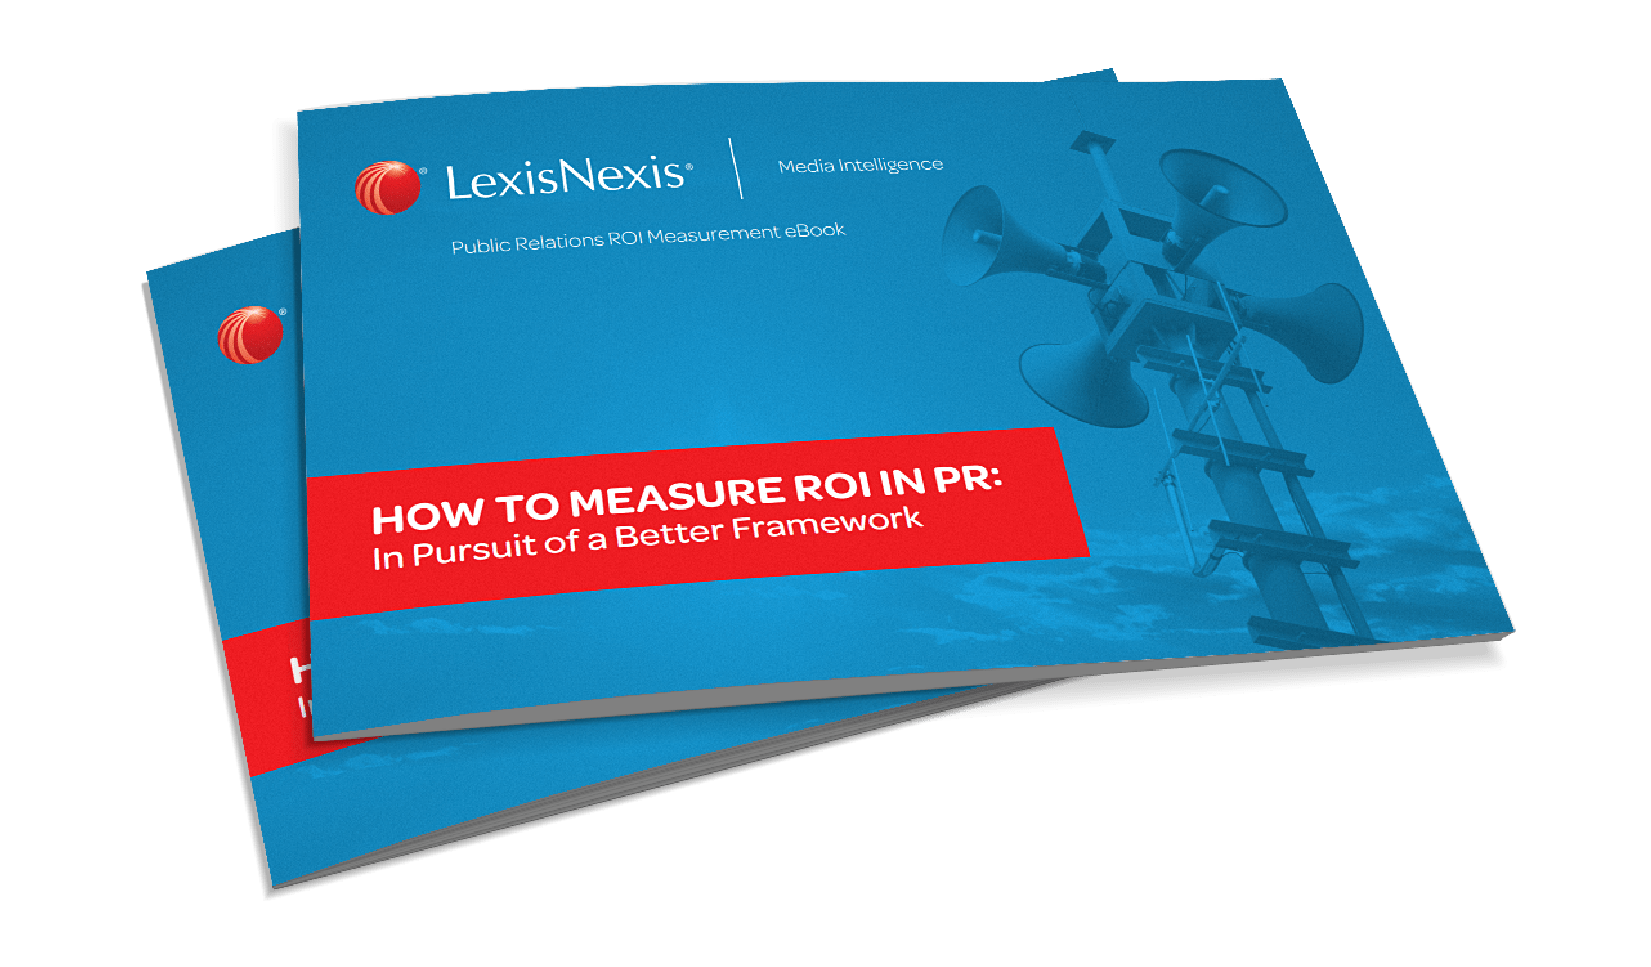 Lexisnexis, Media Monitoring, PR ROI